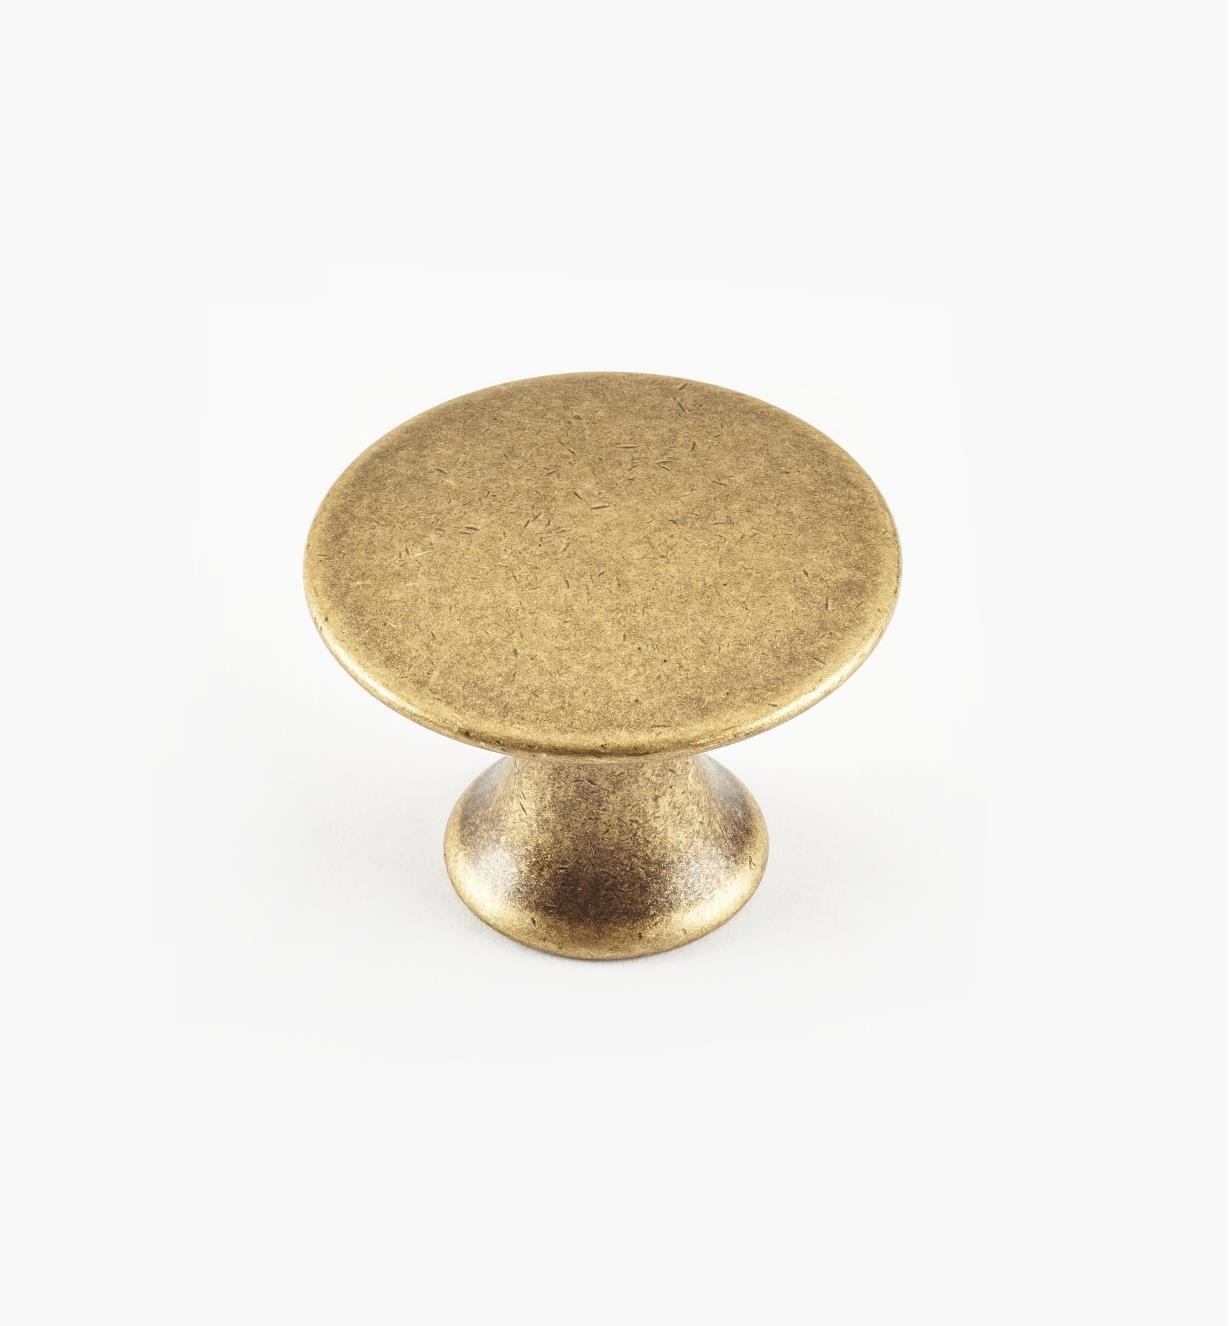 01A0225 - 25mm x 19mmAntique Brass Plain Knob